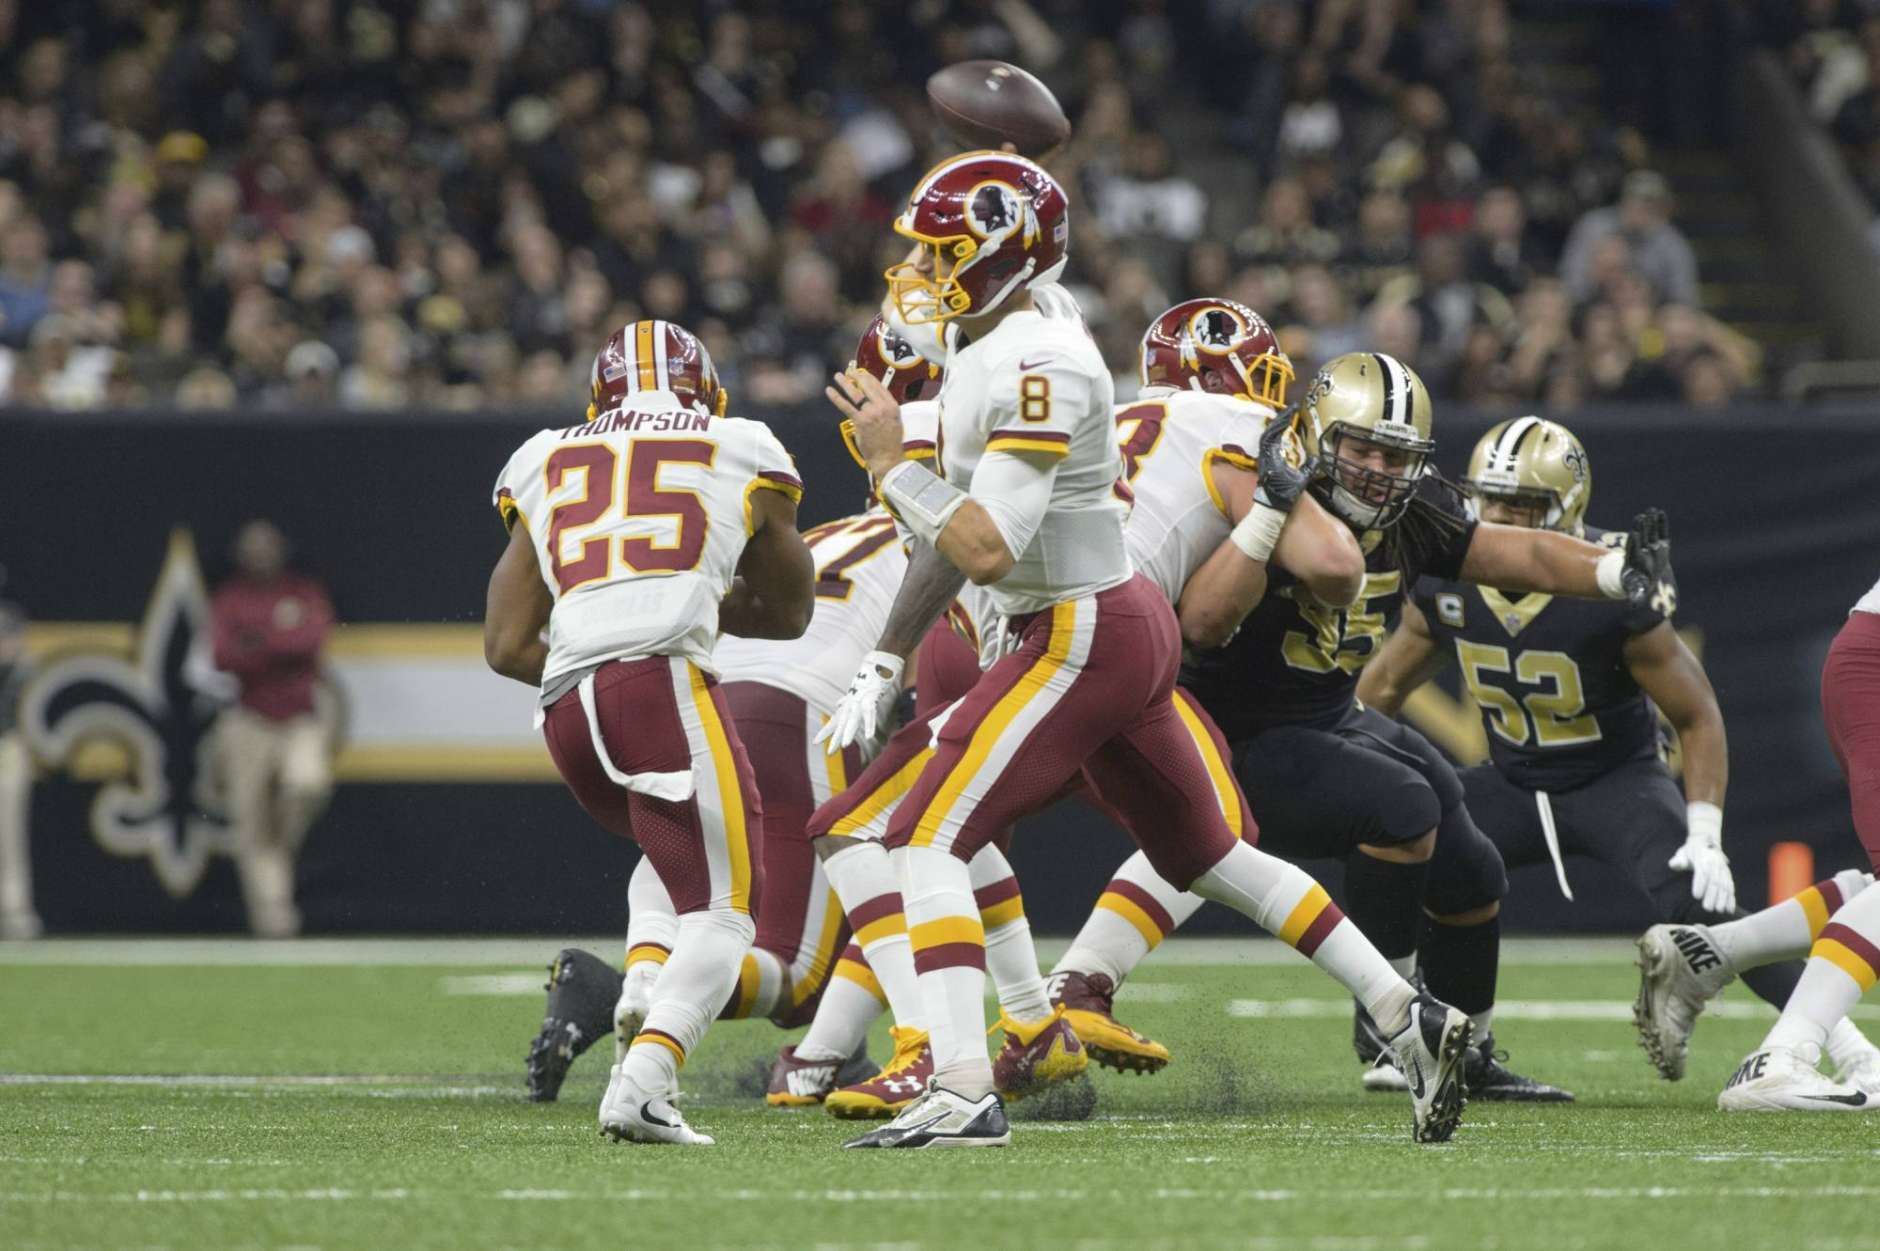 Redskins quarterback Kirk Cousins throws a pass as The New Orleans Saints take on The Washington Redskins during an NFL football game in the Mercedes-Benz Superdome, Sunday, Nov. 19, 2017 in New Orleans.   (Scott Clause/The Daily Advertiser via AP)